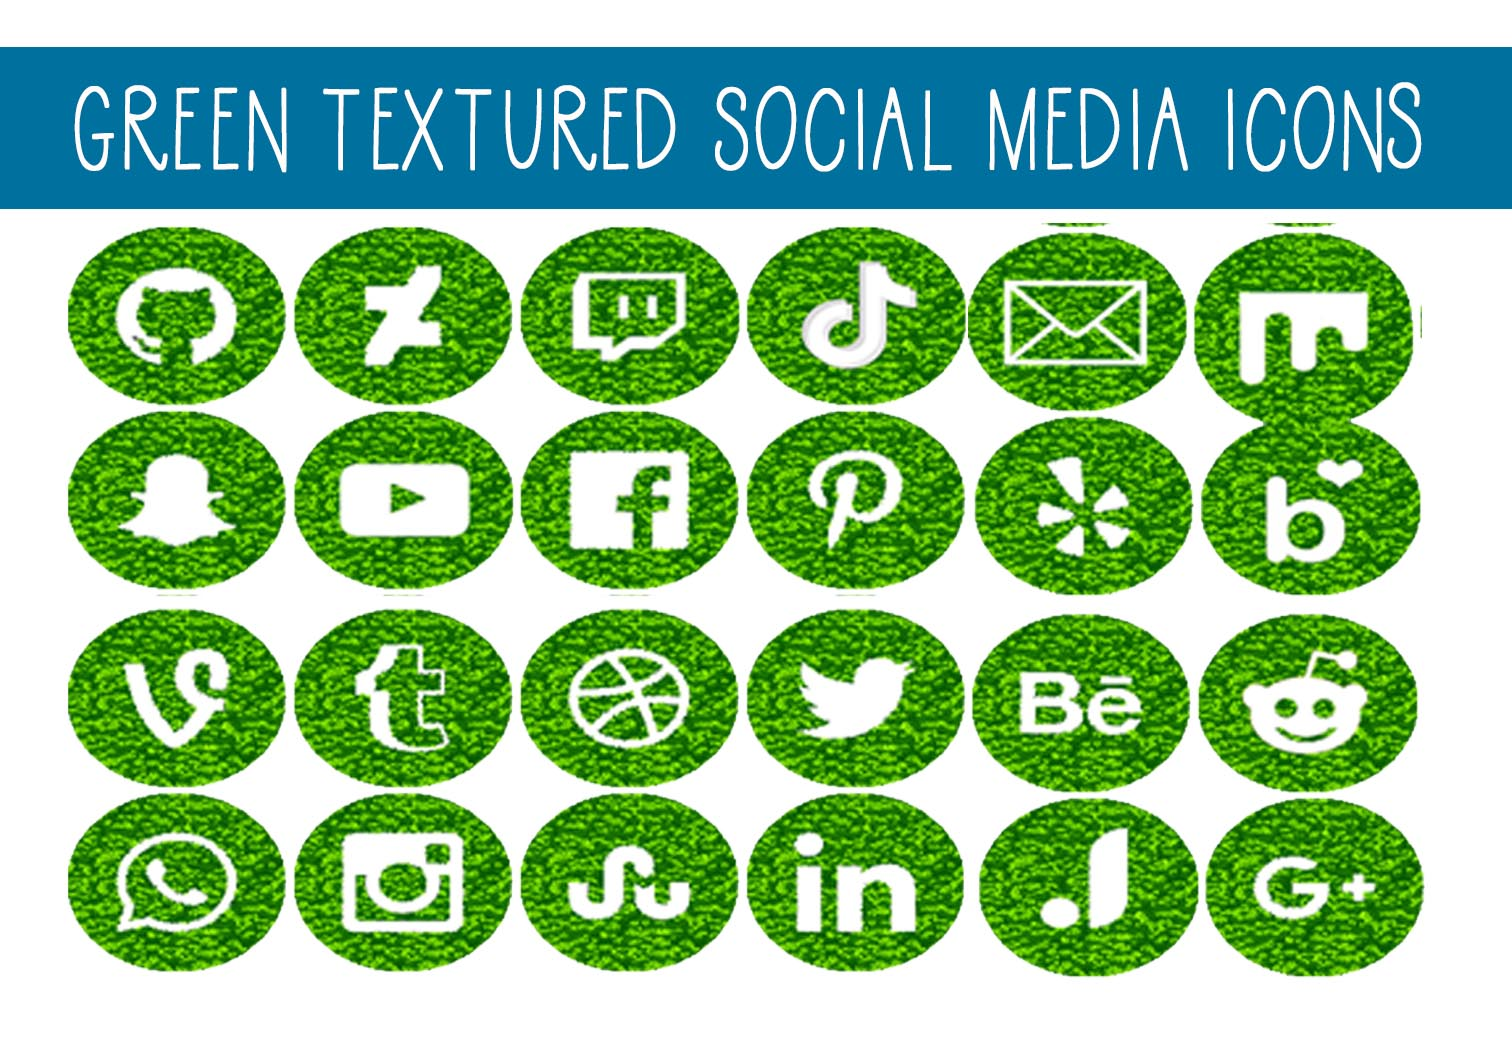 Download Free Green Textured Social Media Icons Graphic By Capeairforce Creative Fabrica for Cricut Explore, Silhouette and other cutting machines.